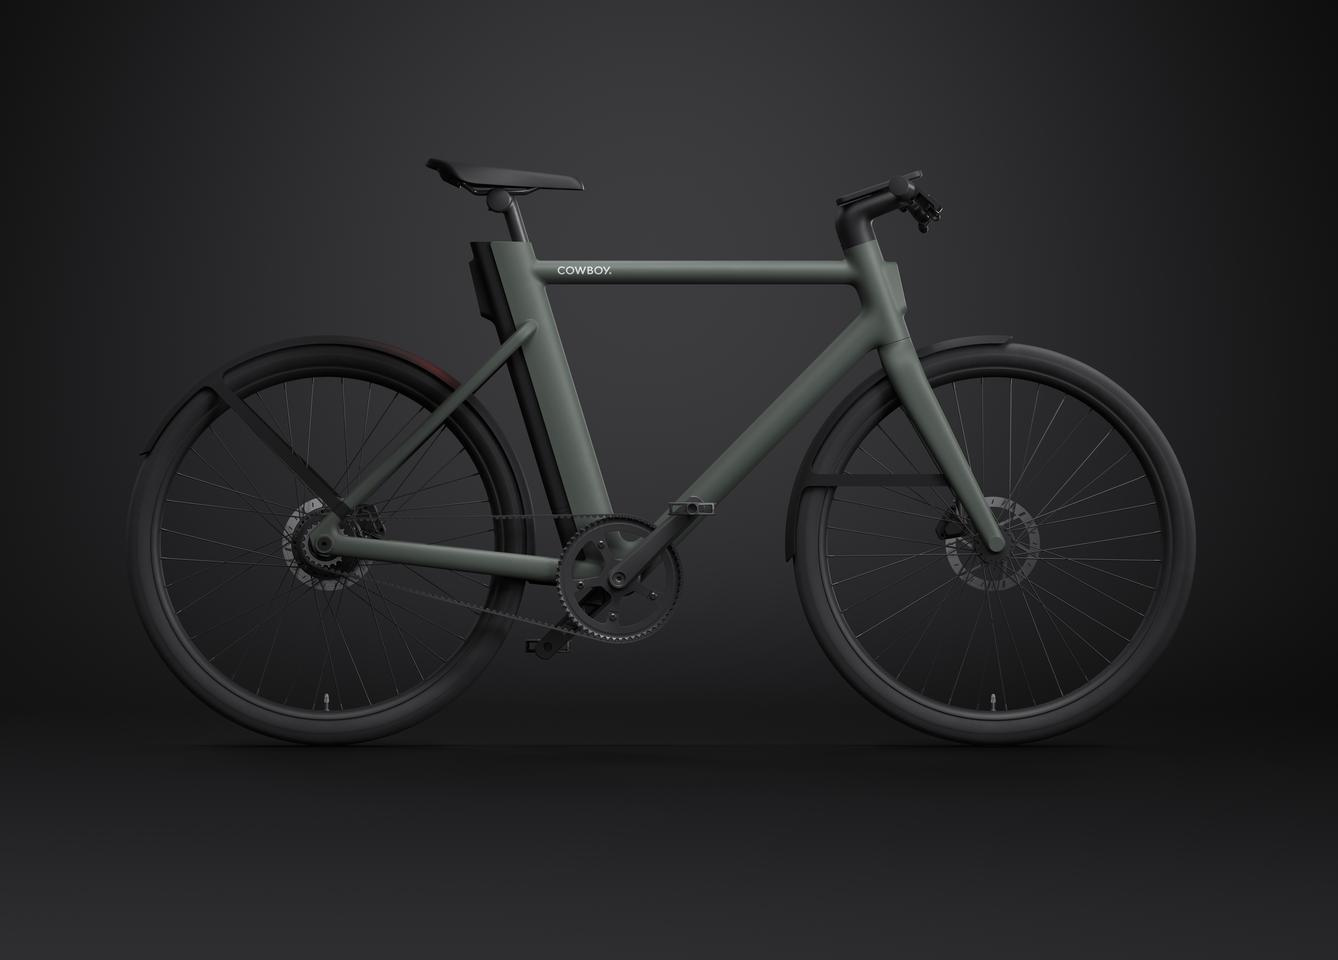 The majority of the components that make up the Cowboy 4 have been custom-made for this ebike